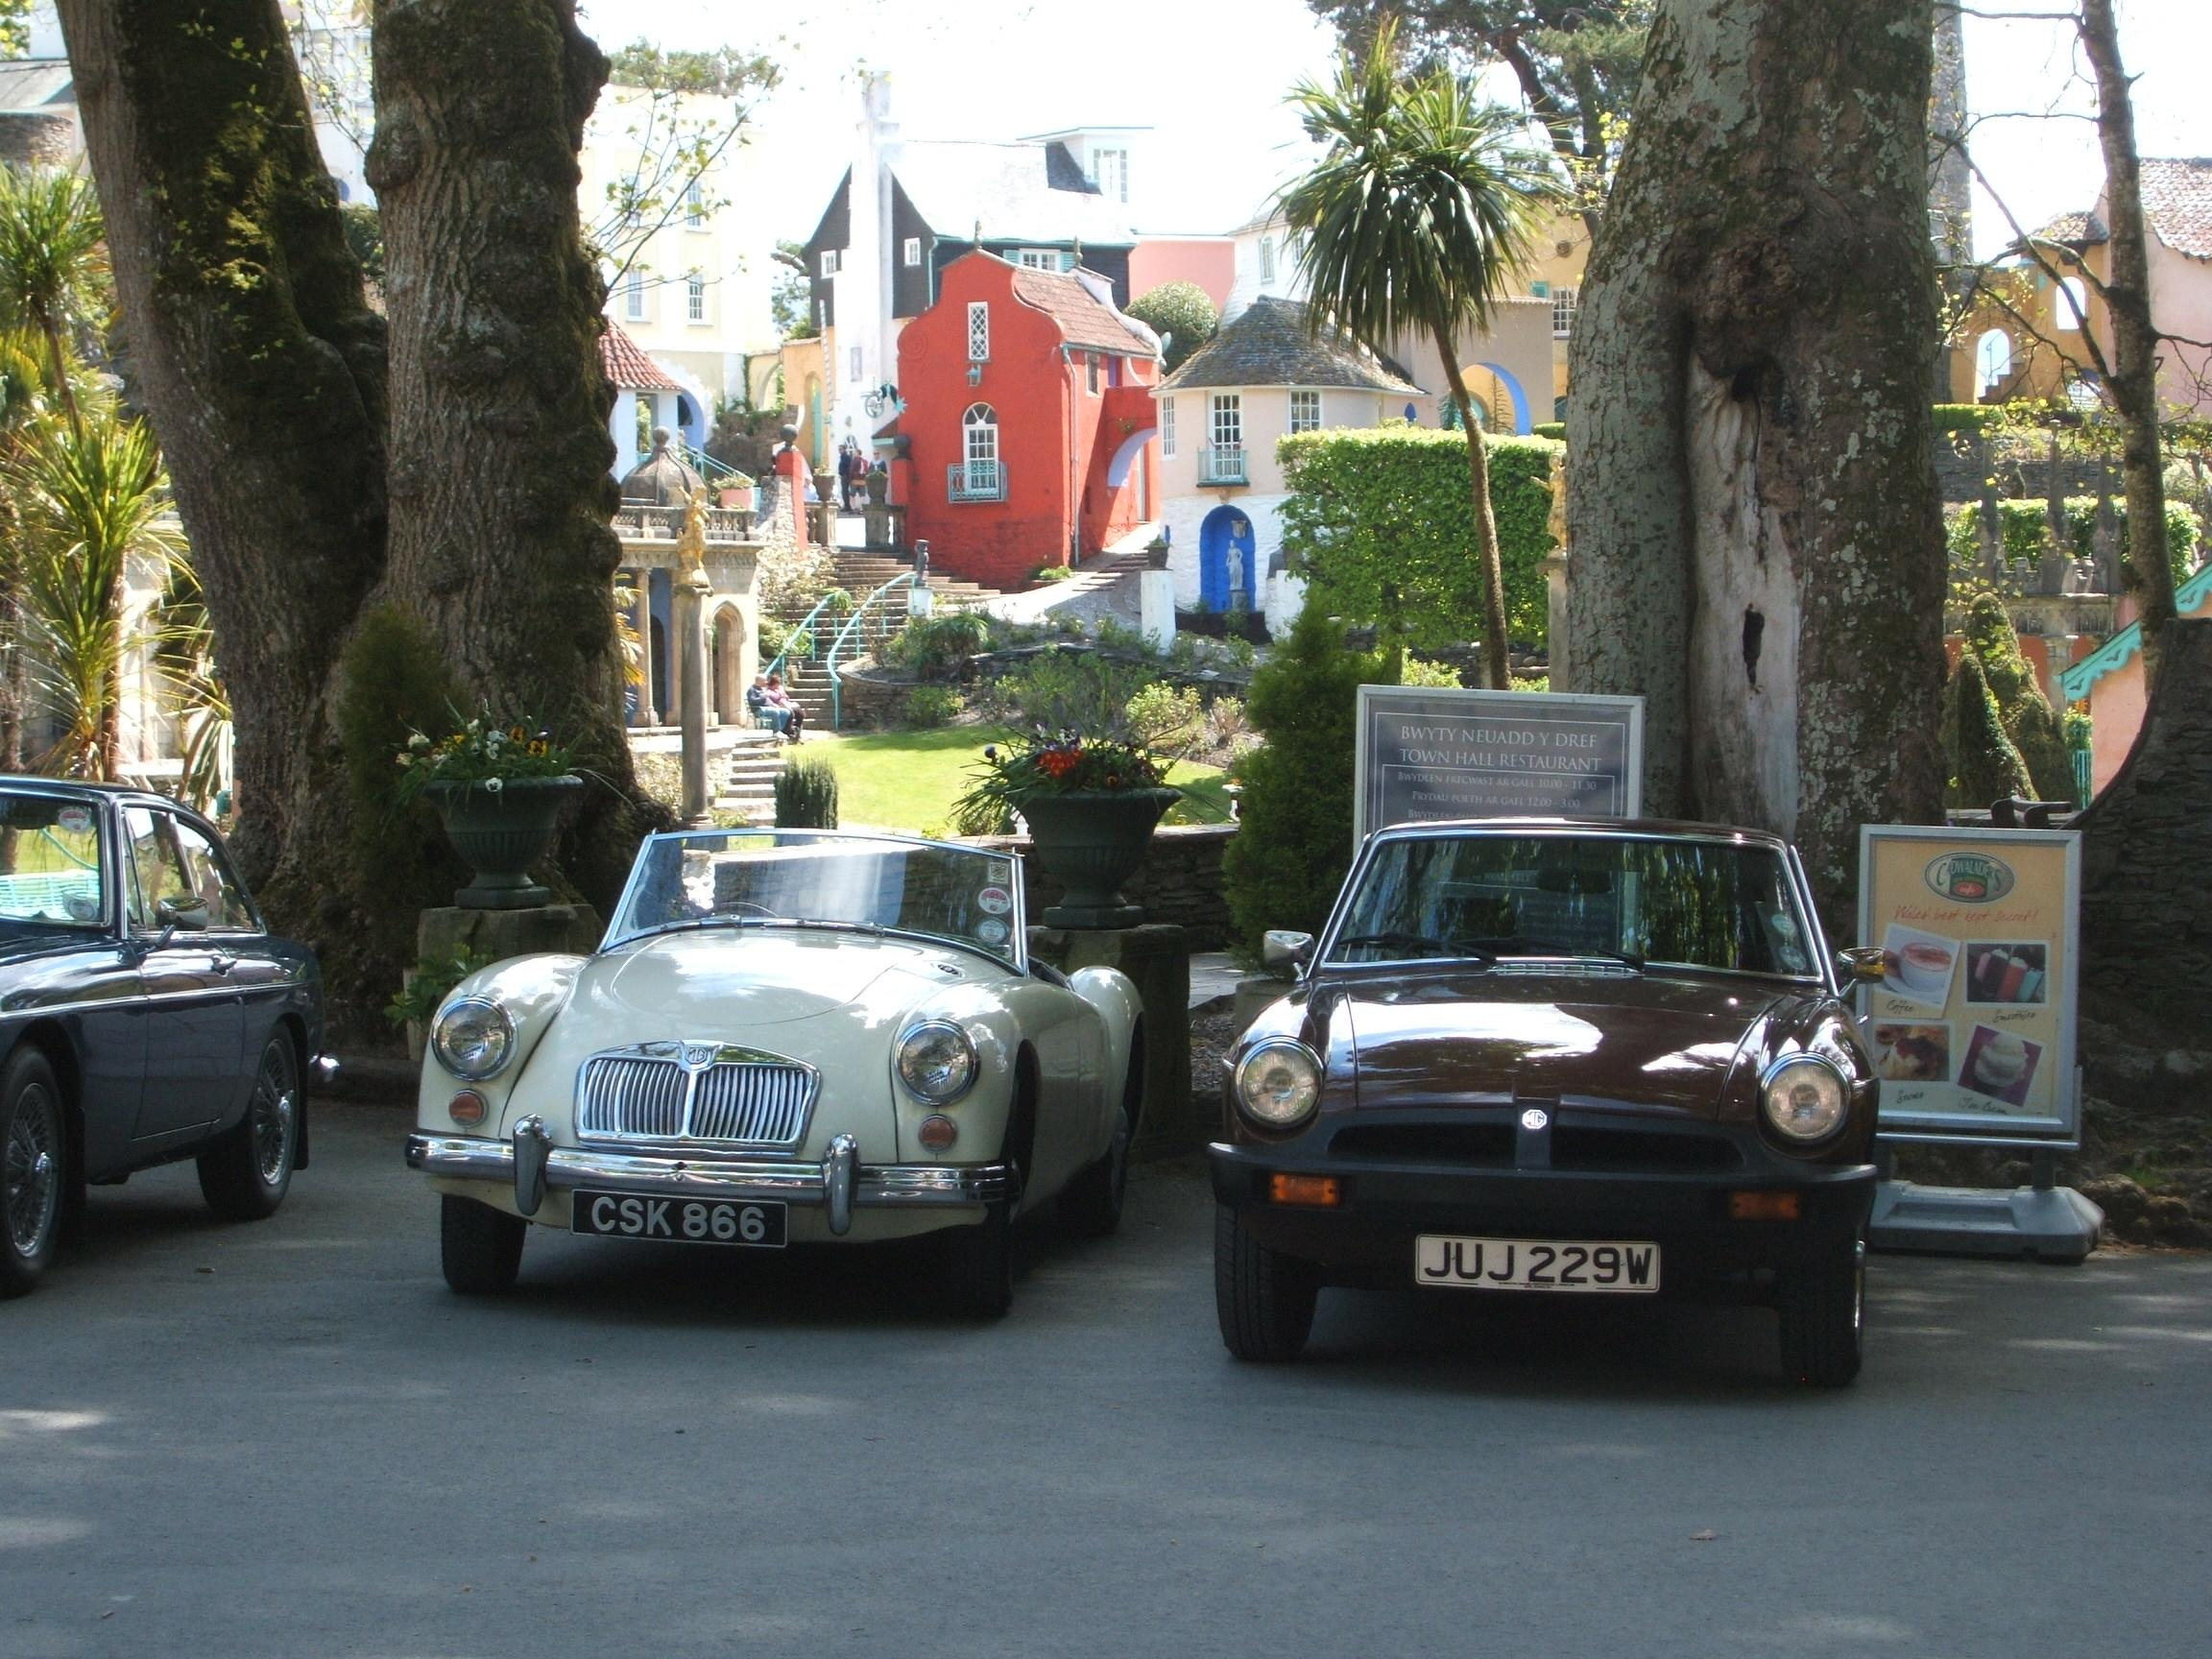 Members cars parked in Port Merrion on the tour during the Wales trip ac 1